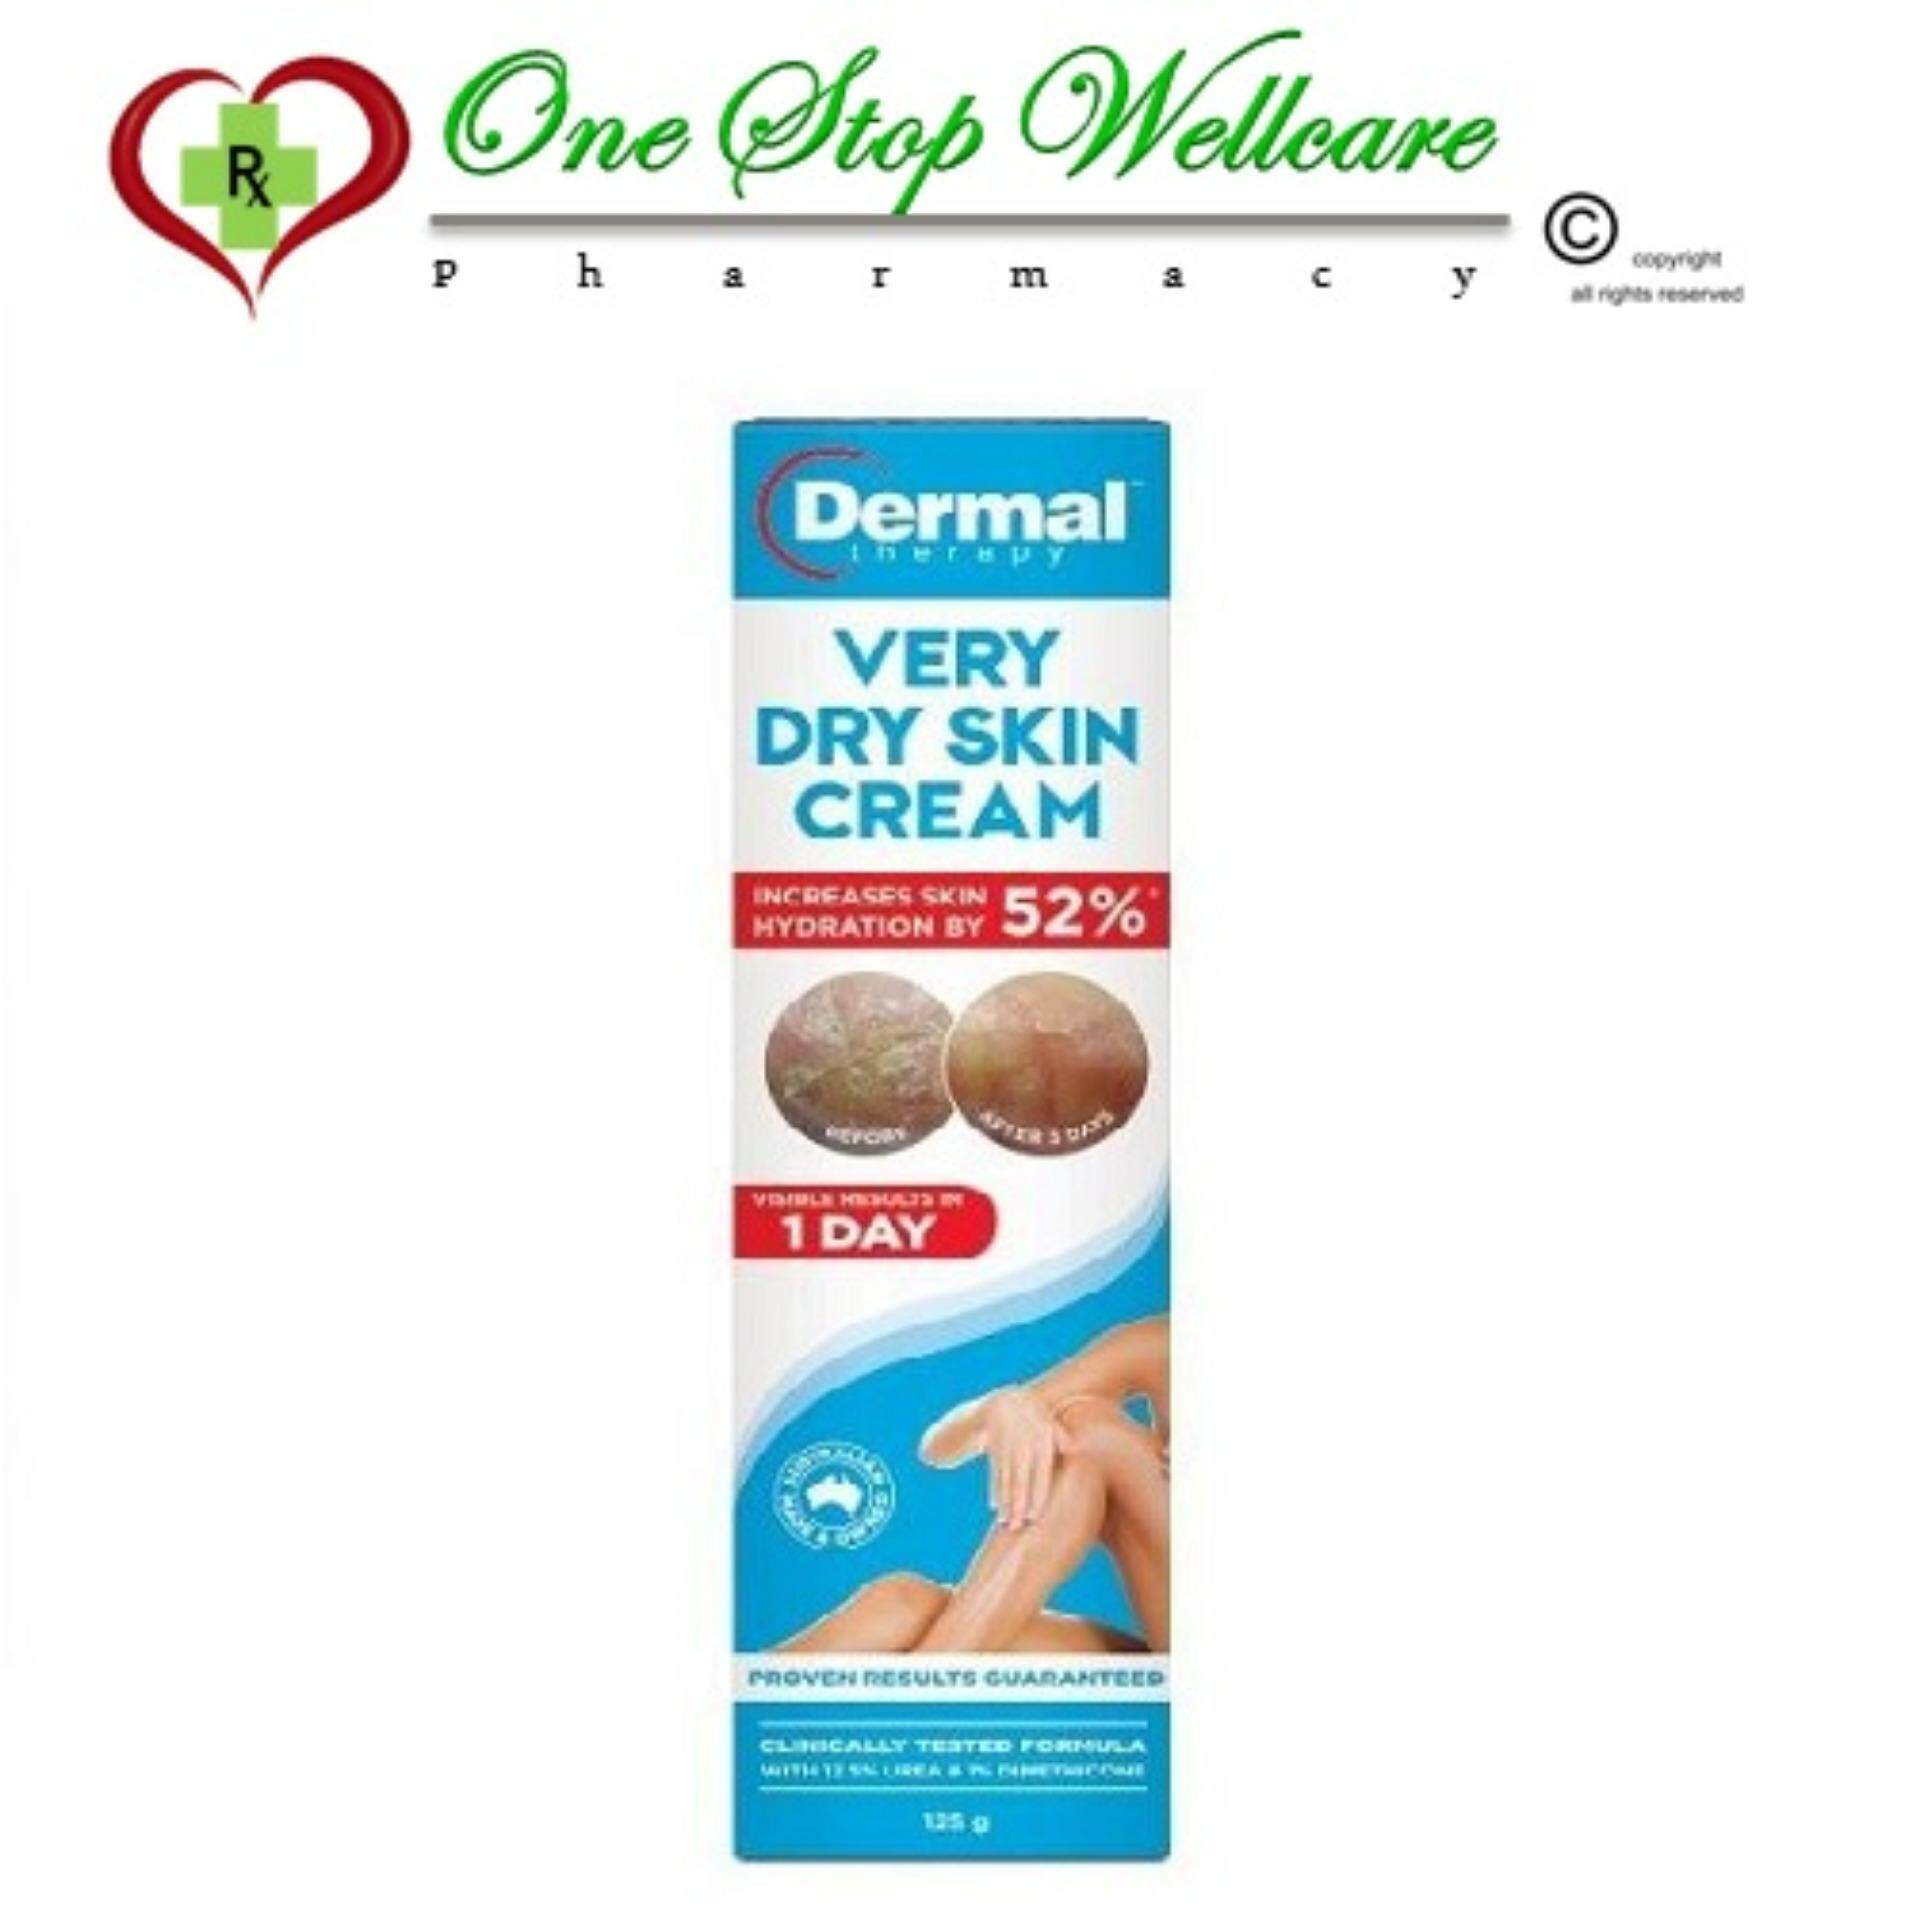 Dermal Very Dry Skin Cream125g By One Stop Wellcare Pharmacy.